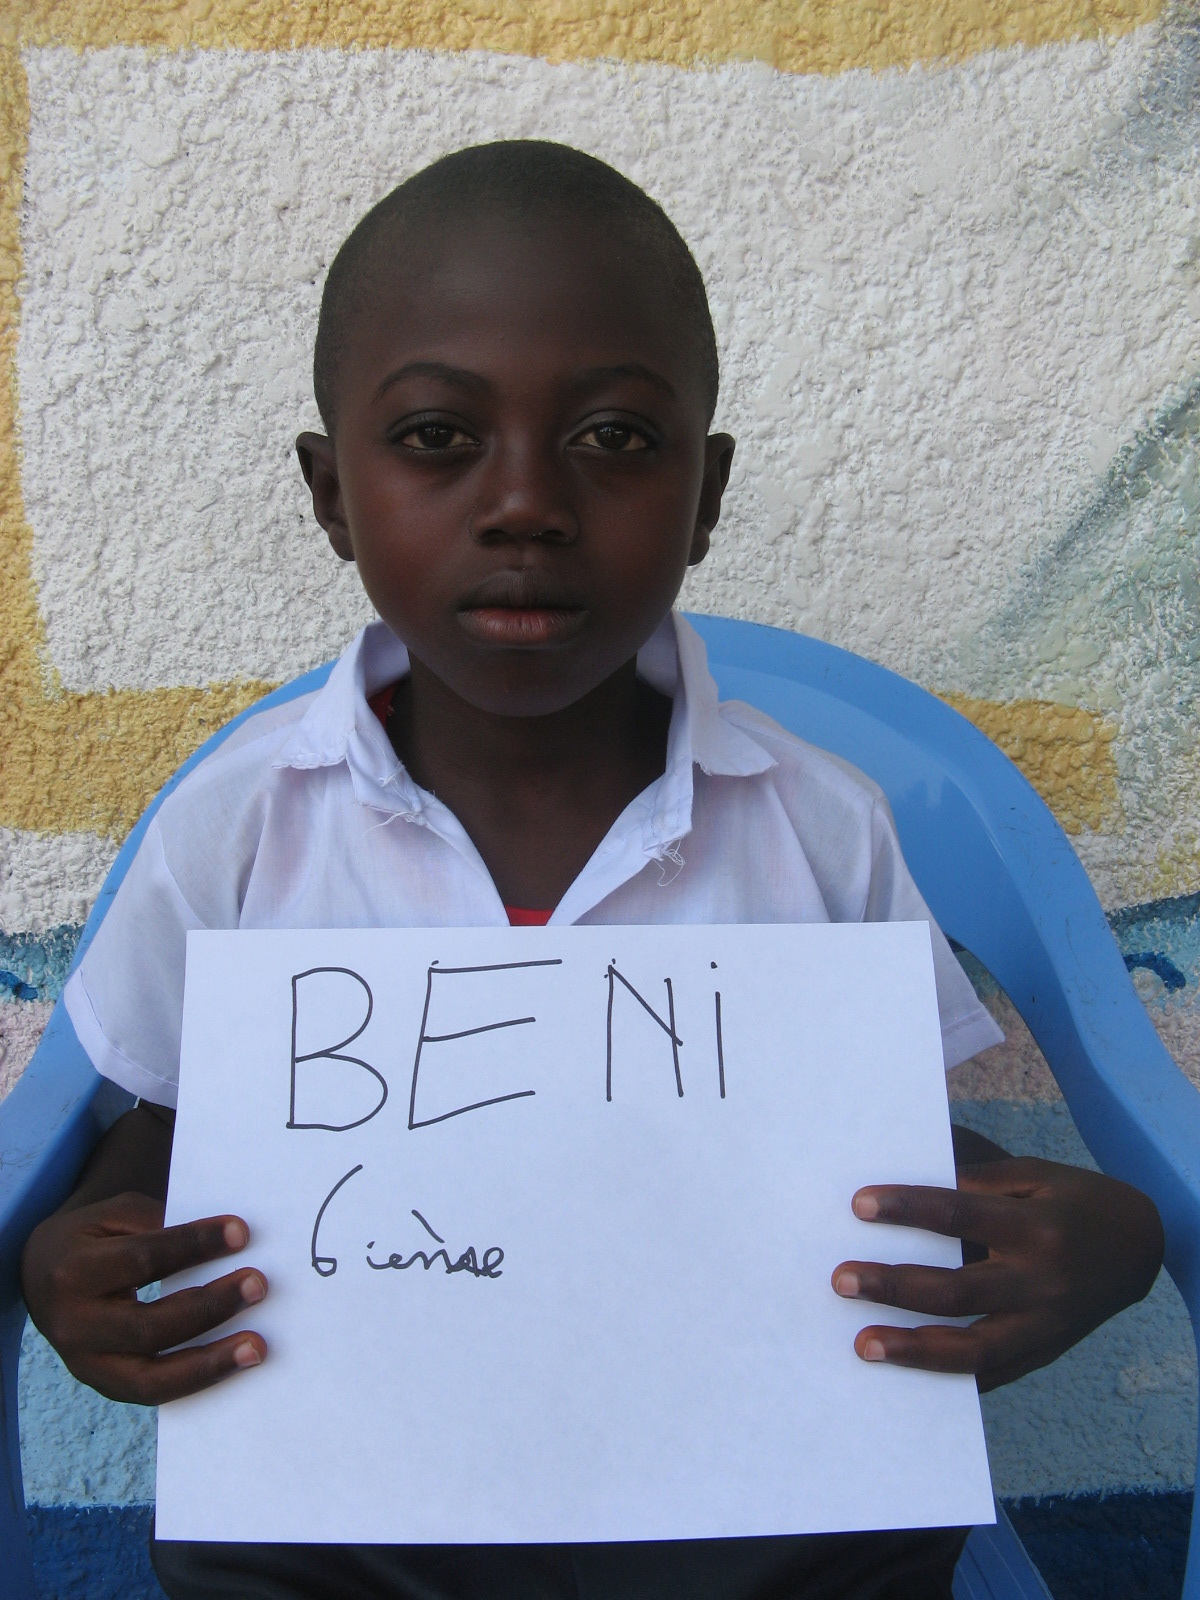 Evaluating and refining the program means that more students, like Beni, will be able to be a part of stronger educational systems.